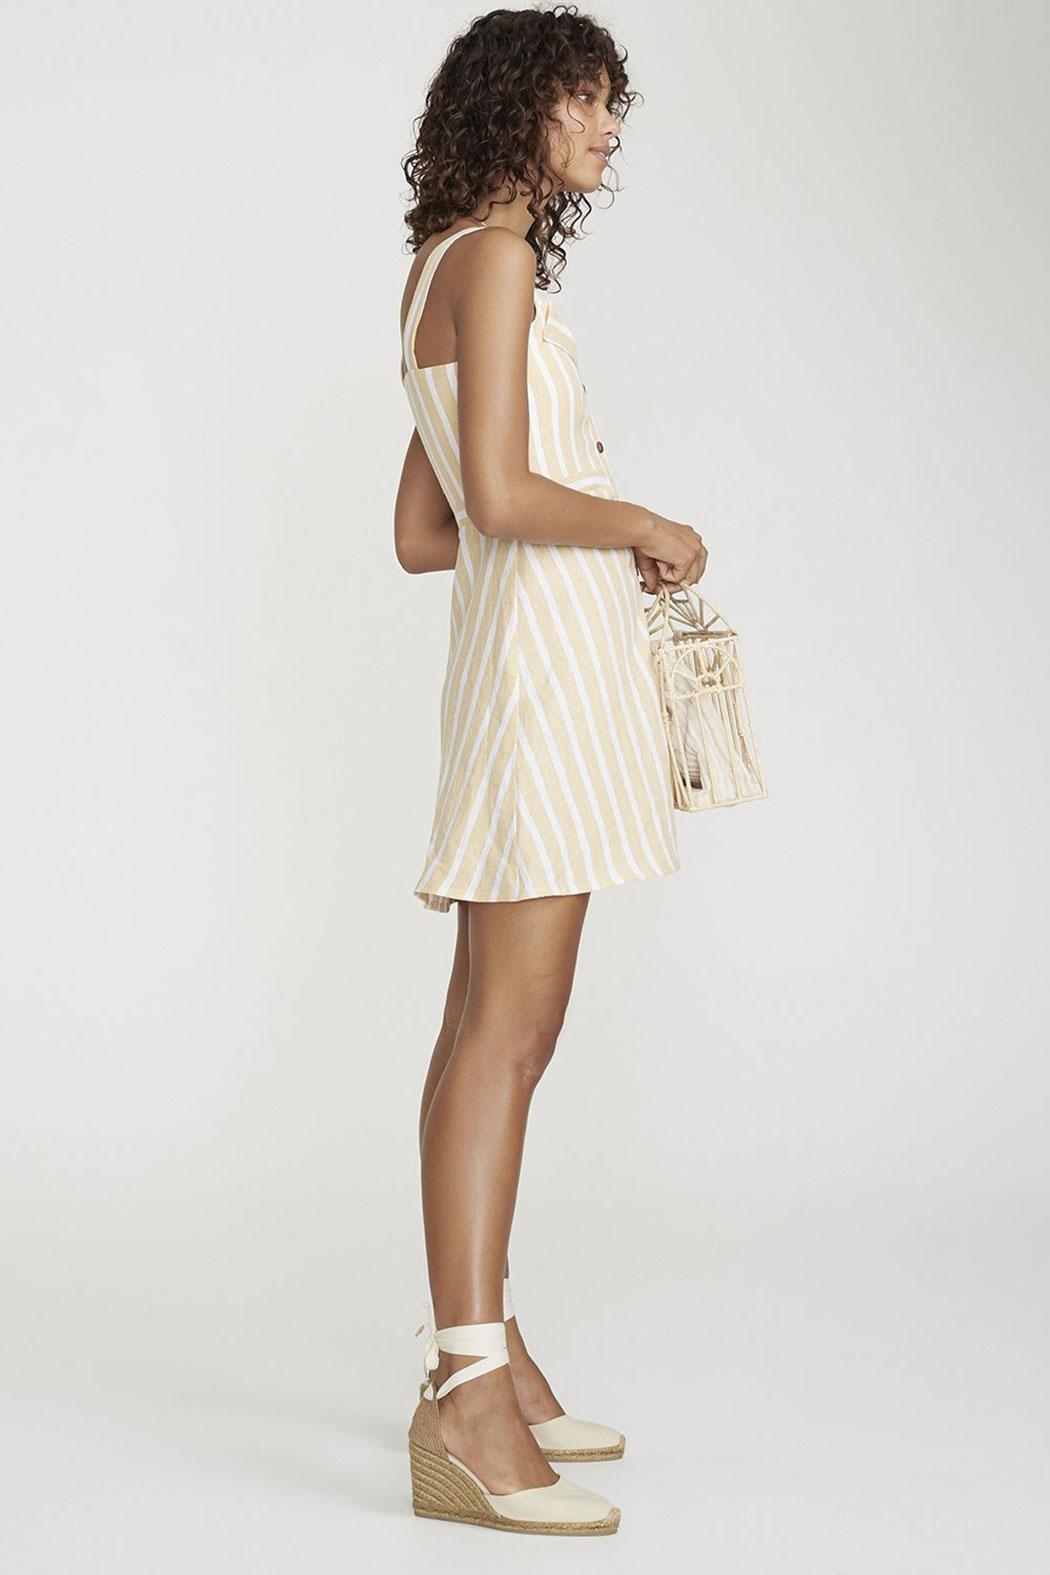 b92f593fd6 Faithfull The Brand Le Petite Dress from Queensland by Wolfe and ...